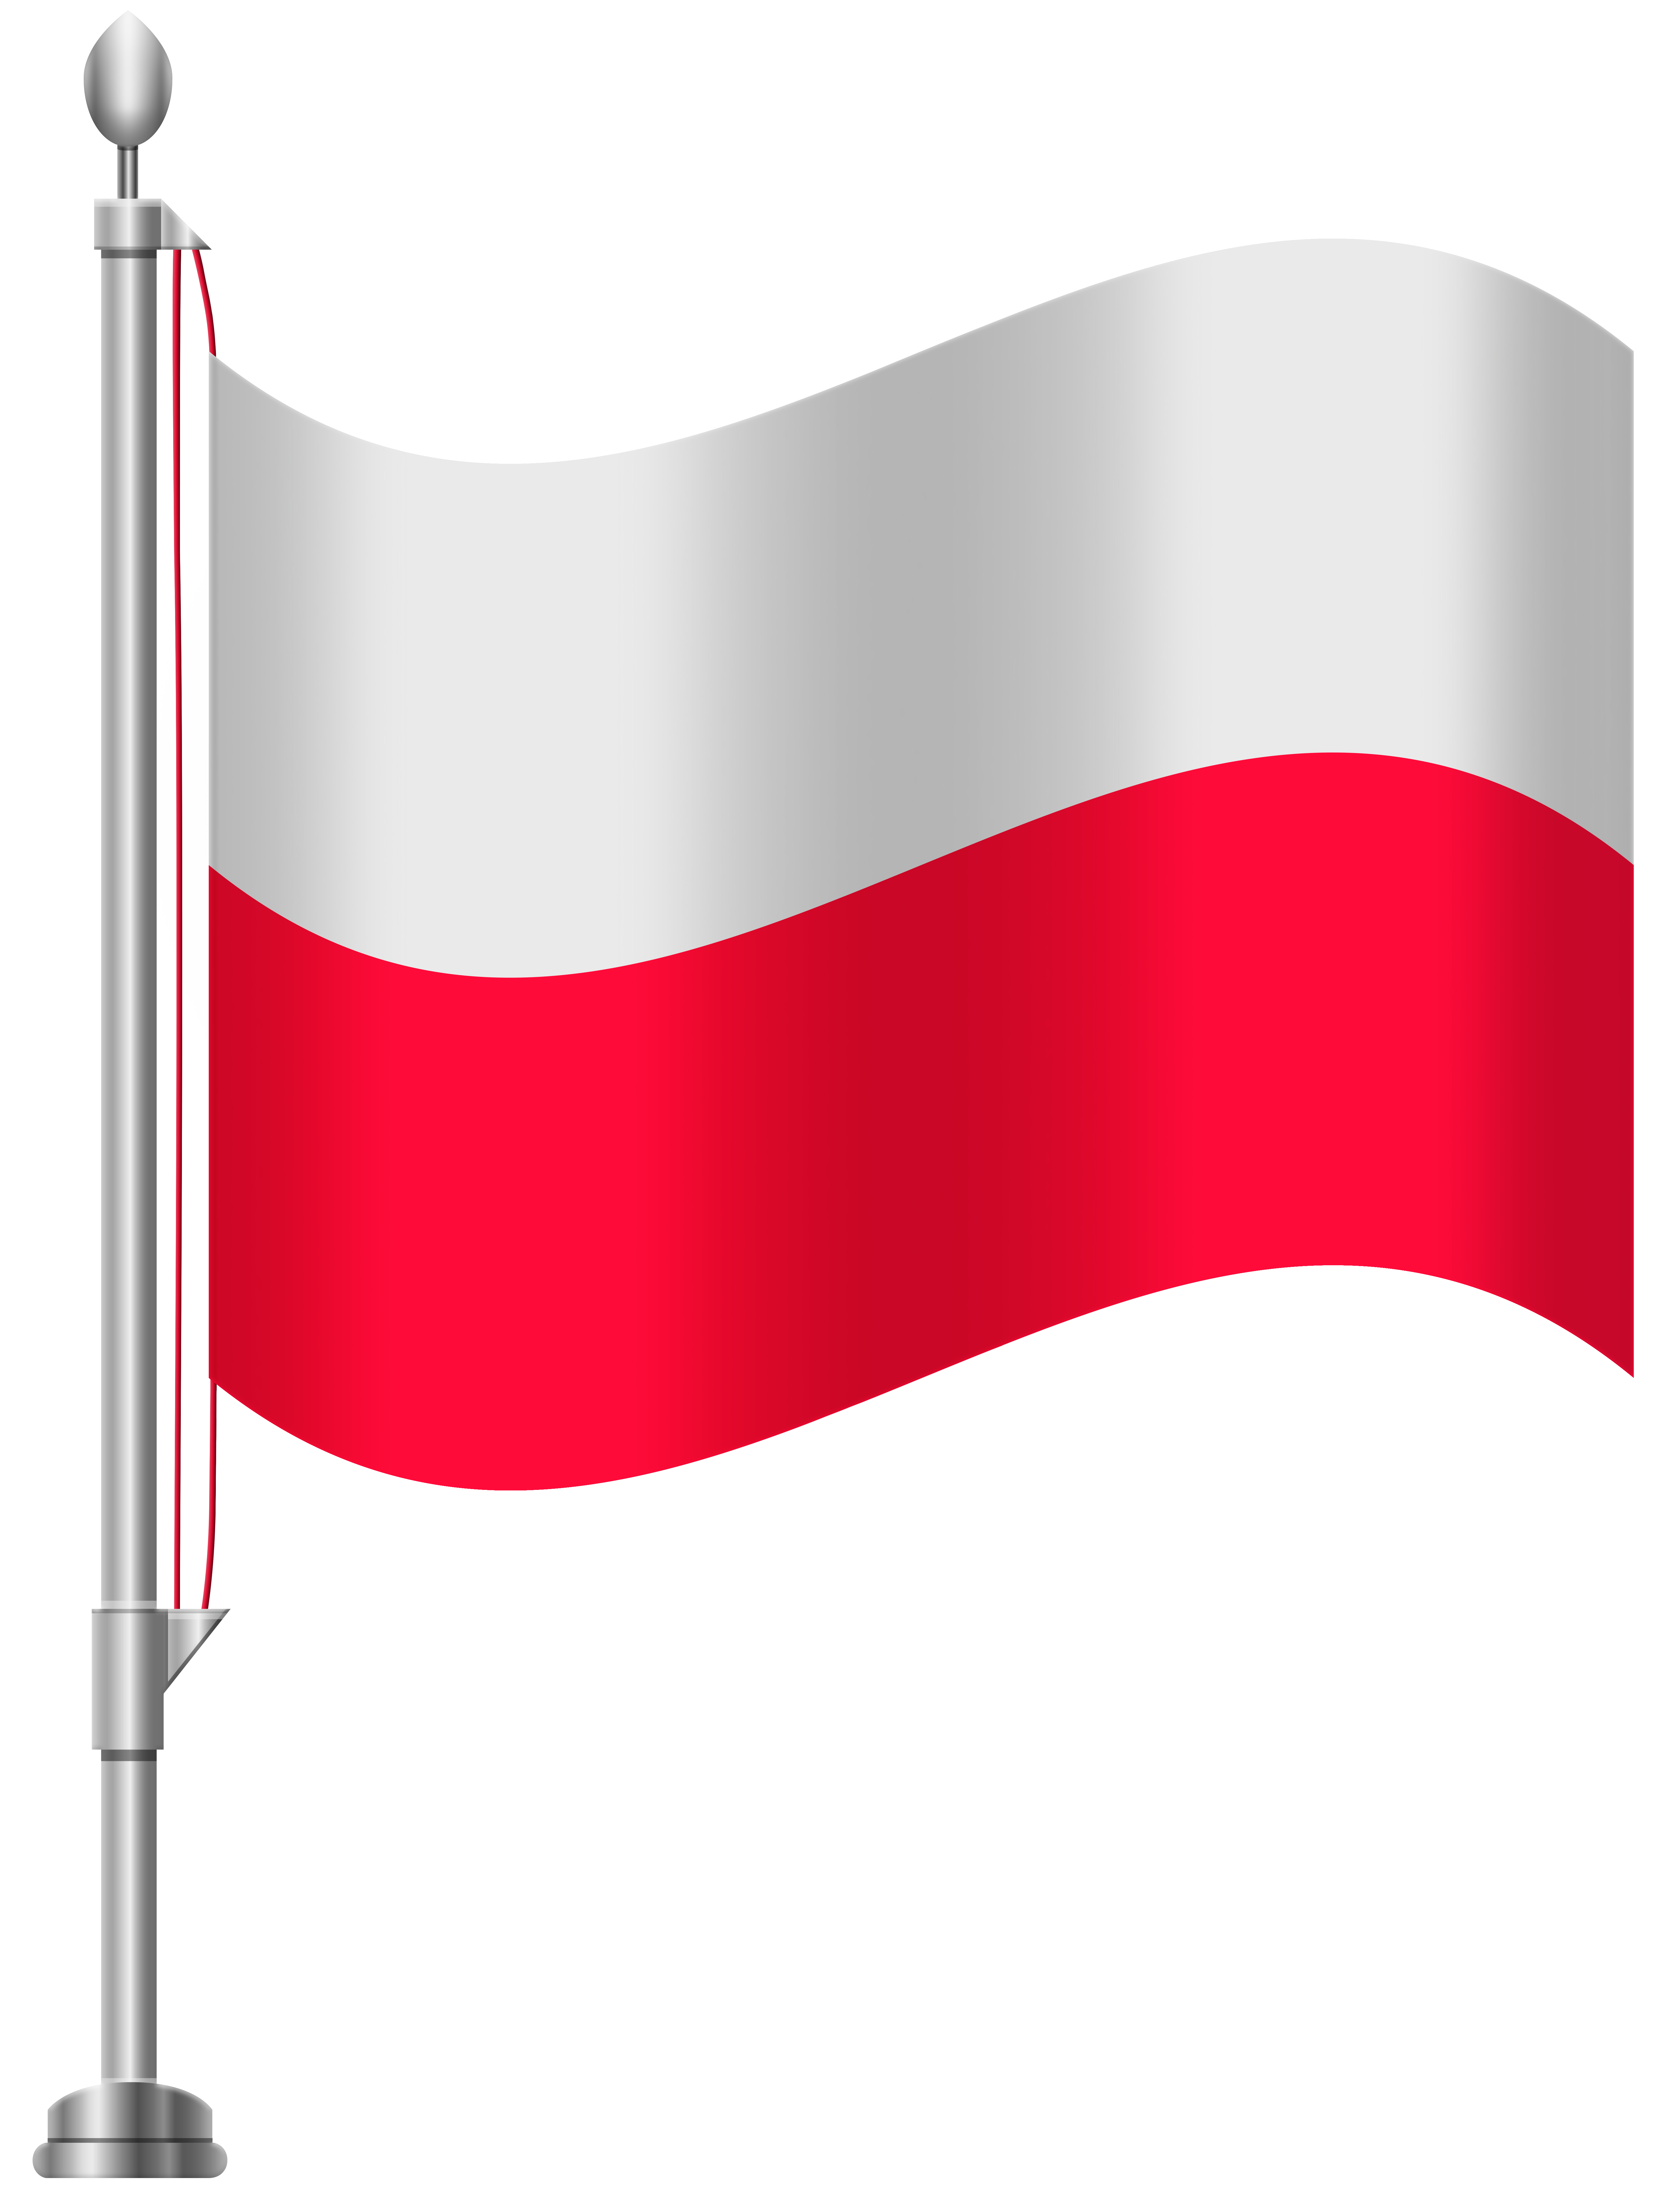 Polish flag clipart picture freeuse library Poland Flag PNG Clip Art - Best WEB Clipart picture freeuse library